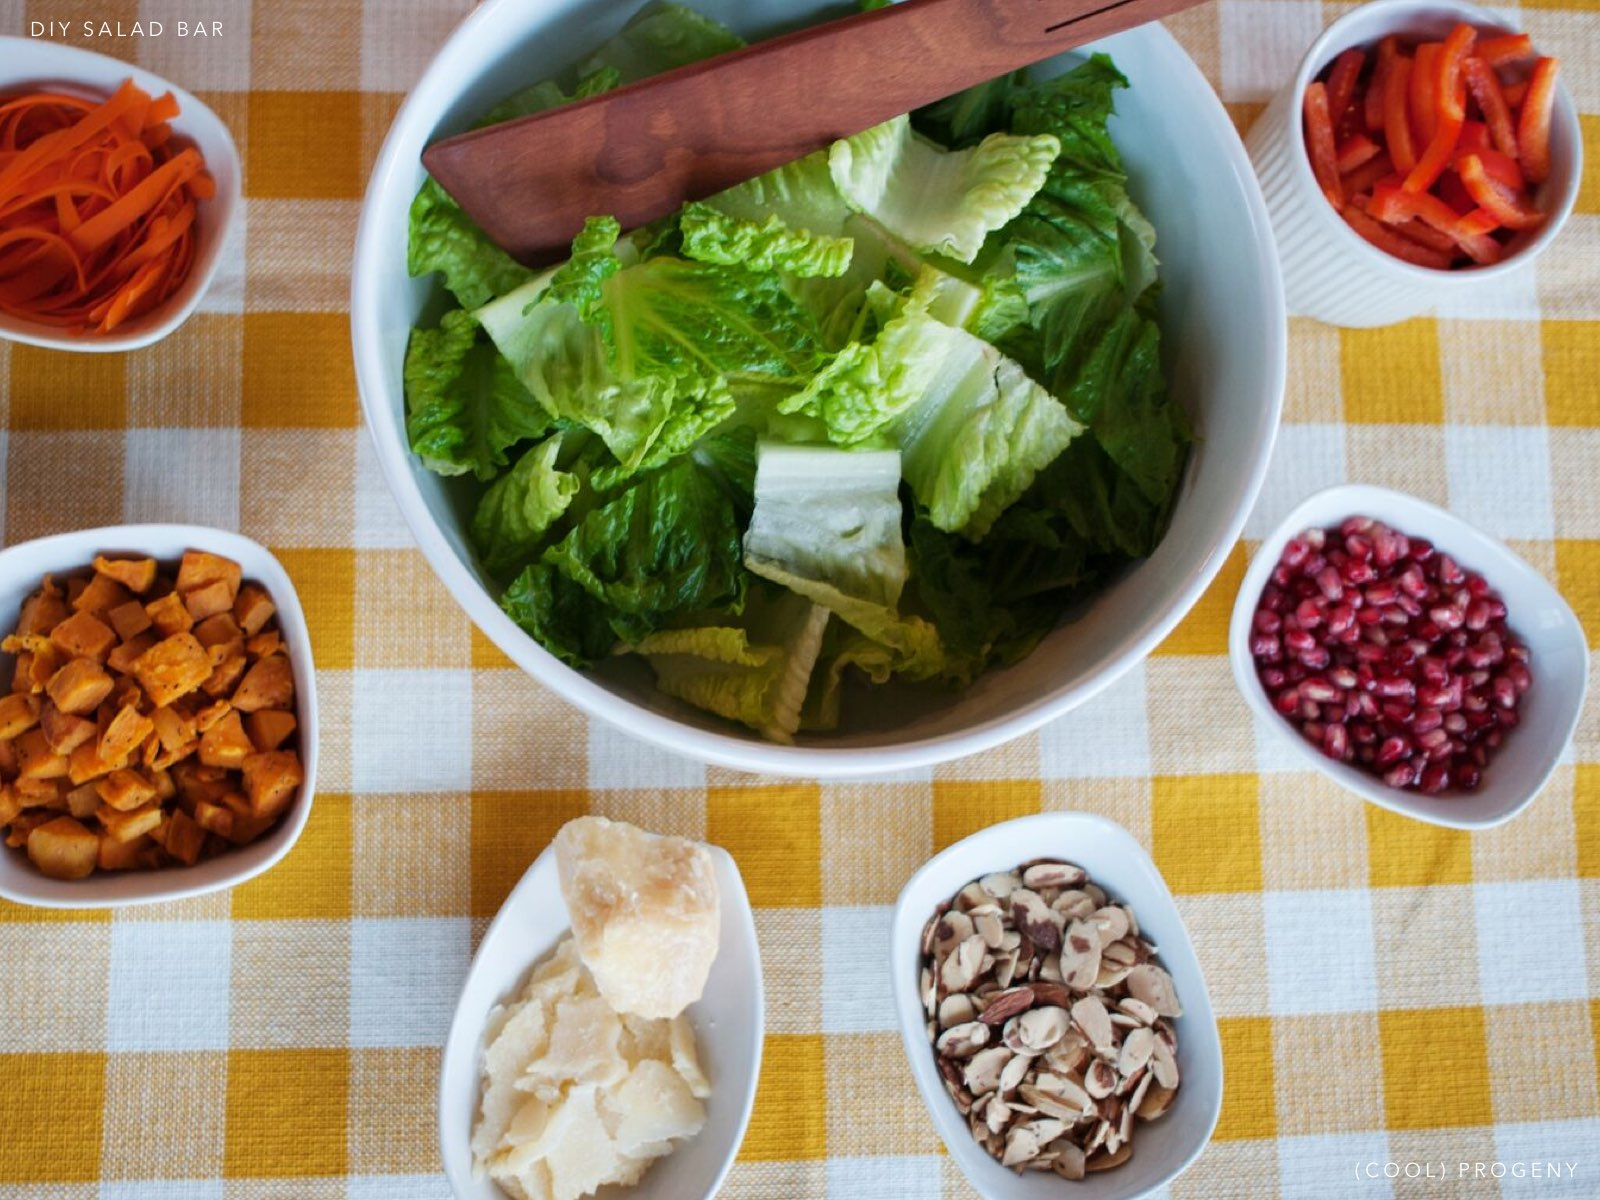 DIY Salad Bar